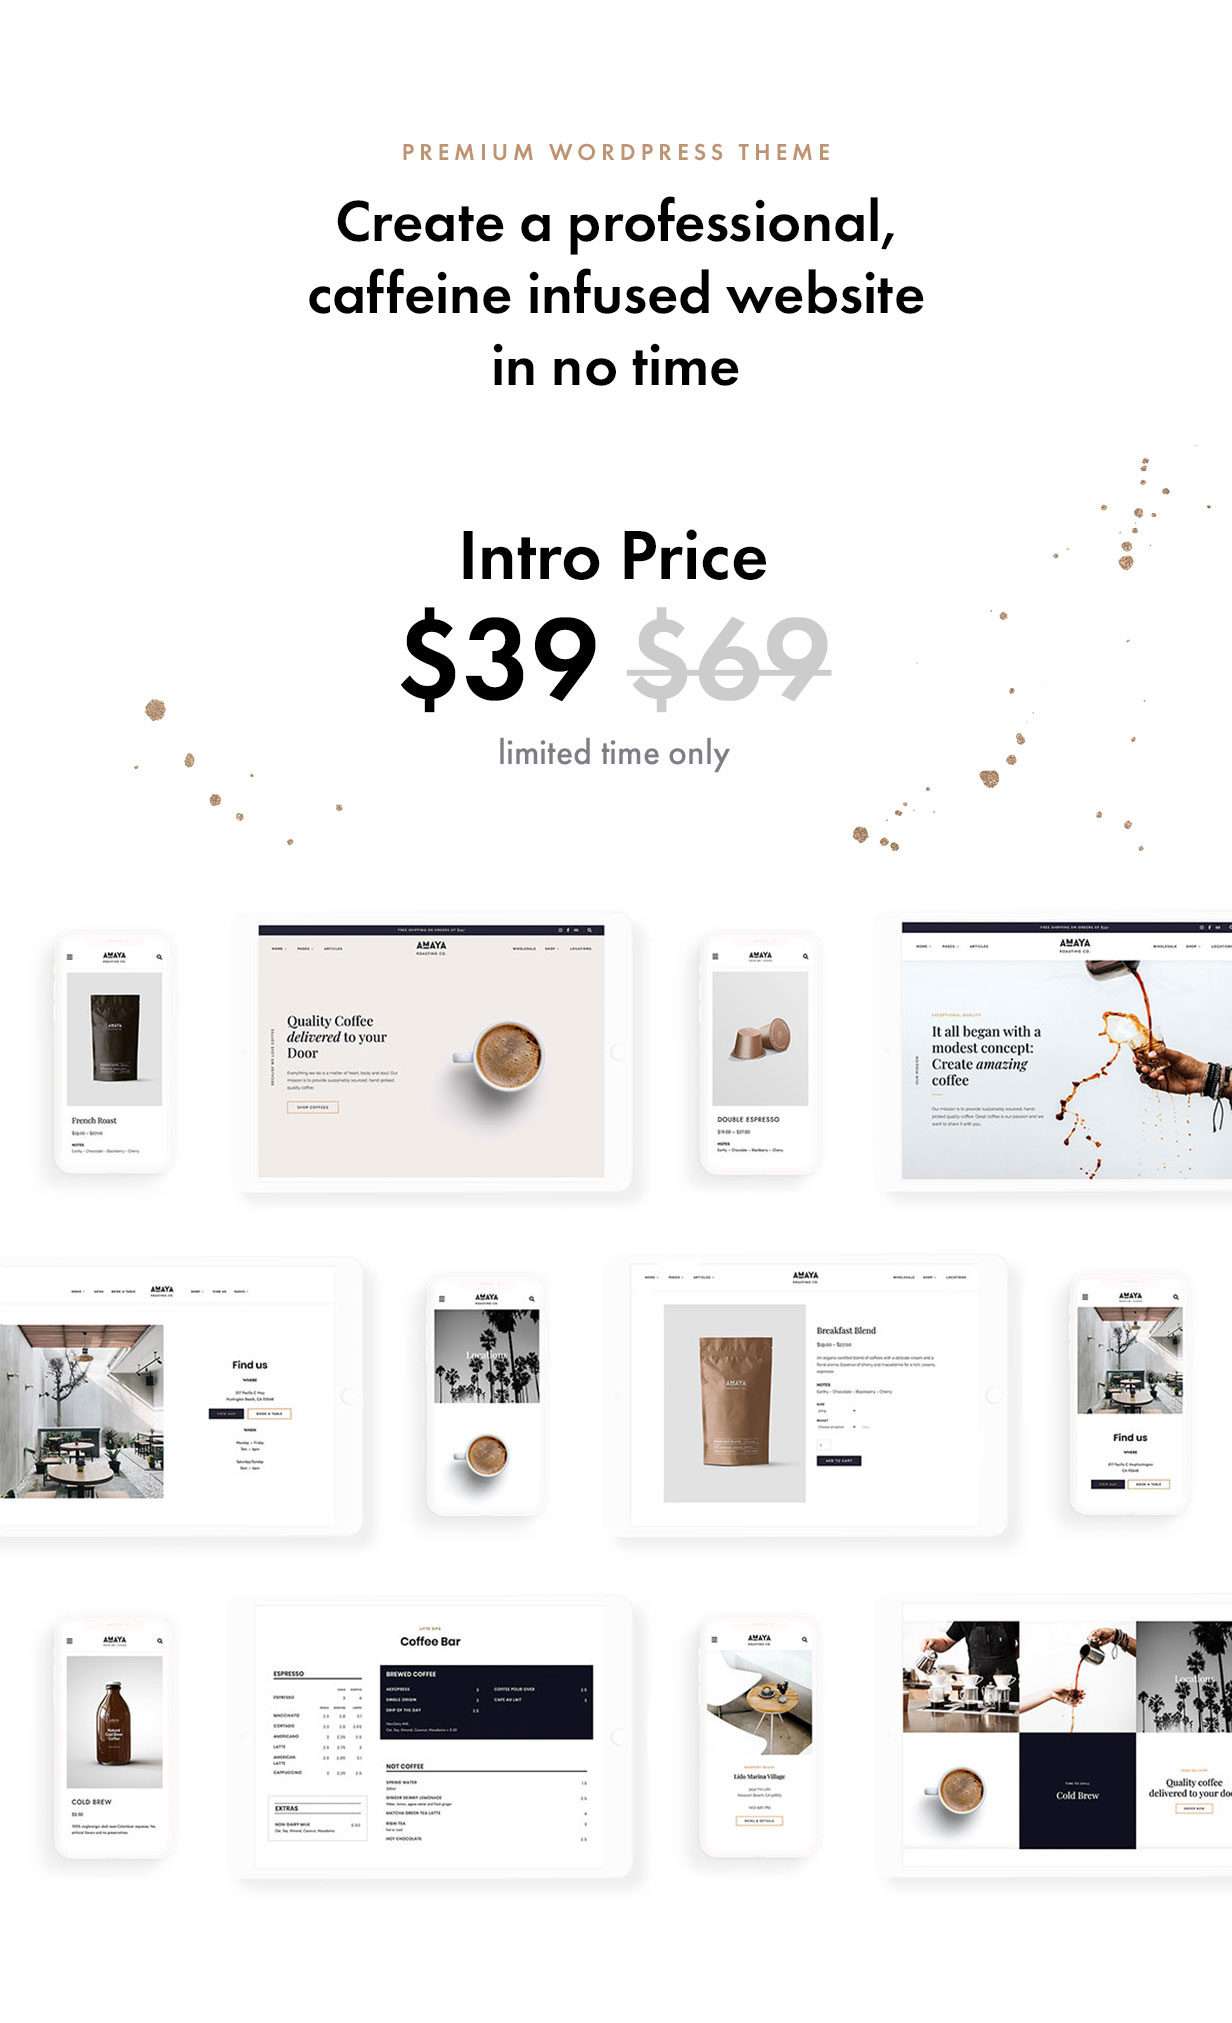 Coffee Bean - Cafe, Coffee Shop, Roastery & Bakery WordPress Theme - 1